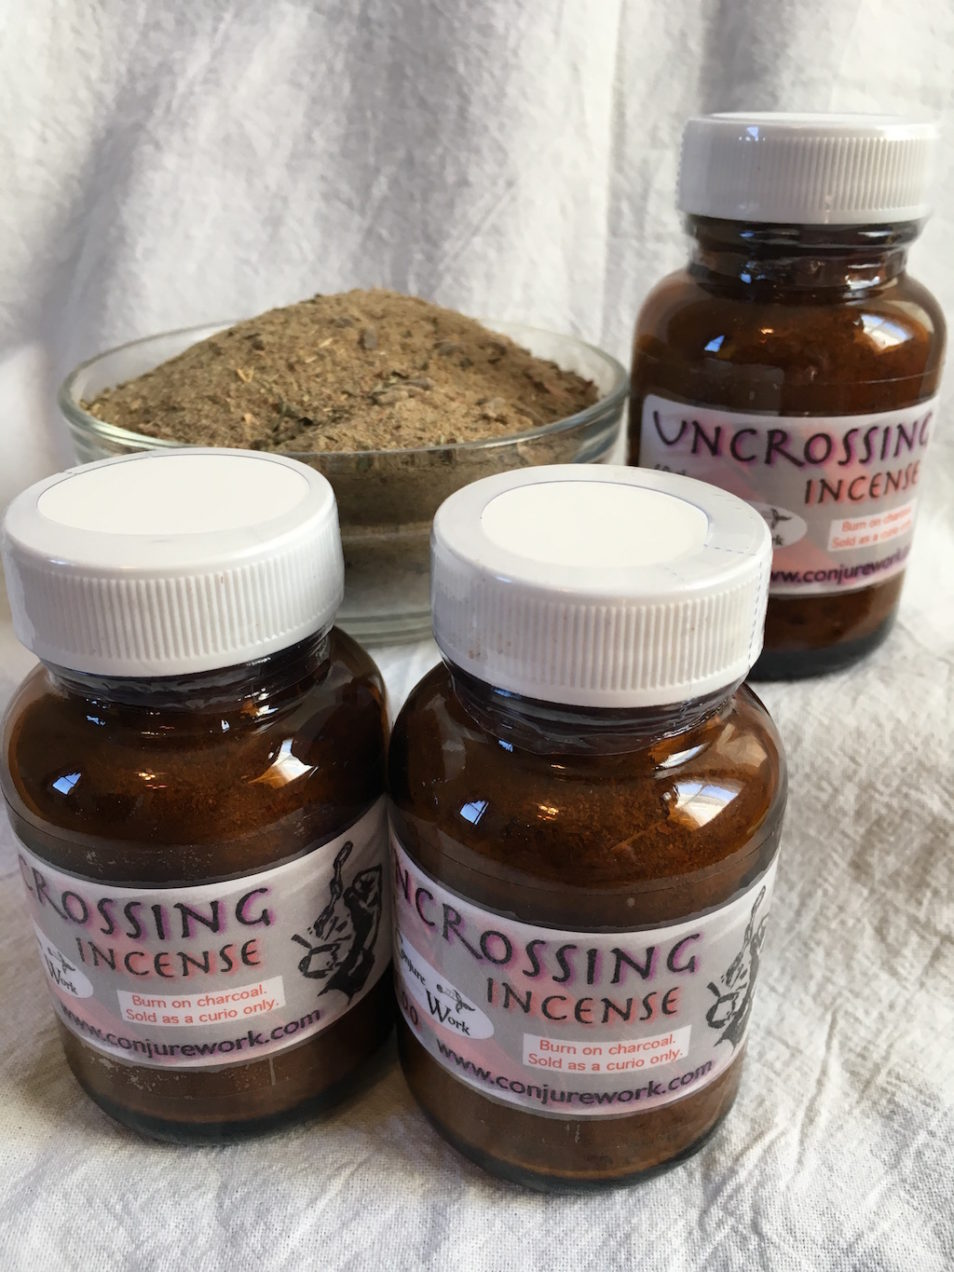 Uncrossing Incense by Magus (Kevin Trent Boswell) in the online Conjure Shop at https://conjurework.com Sorcerous good, services and supplies